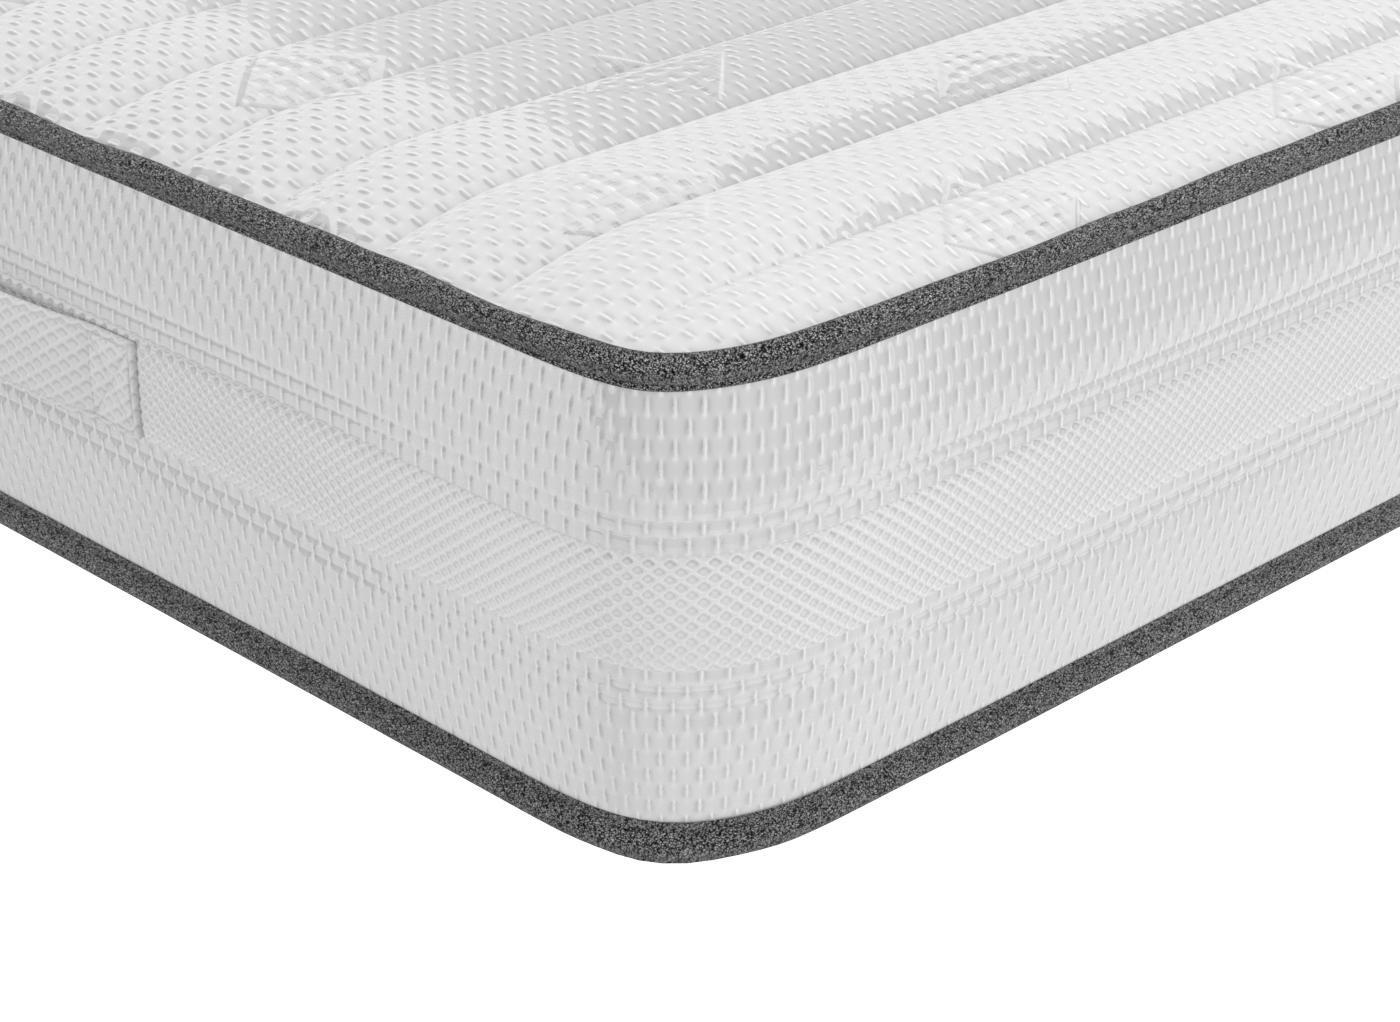 Westwood Pocket Spring Adjustable Mattress - Medium Firm 4'0 Small double